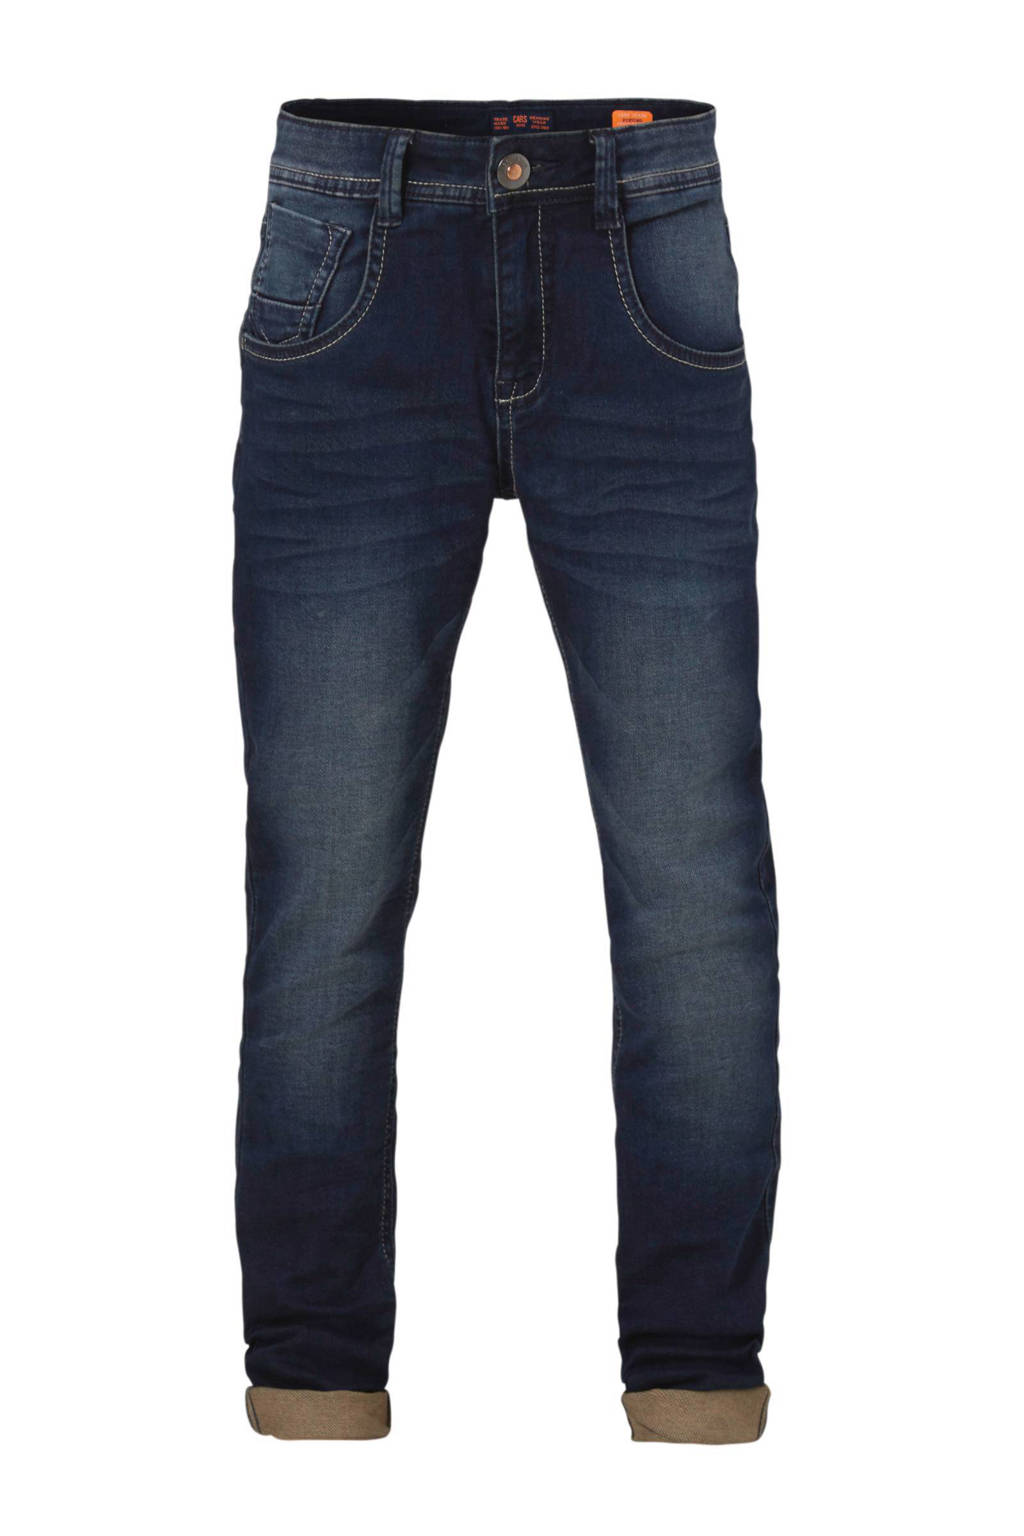 Cars Prinze slim fit jog denim, Dark blue denim